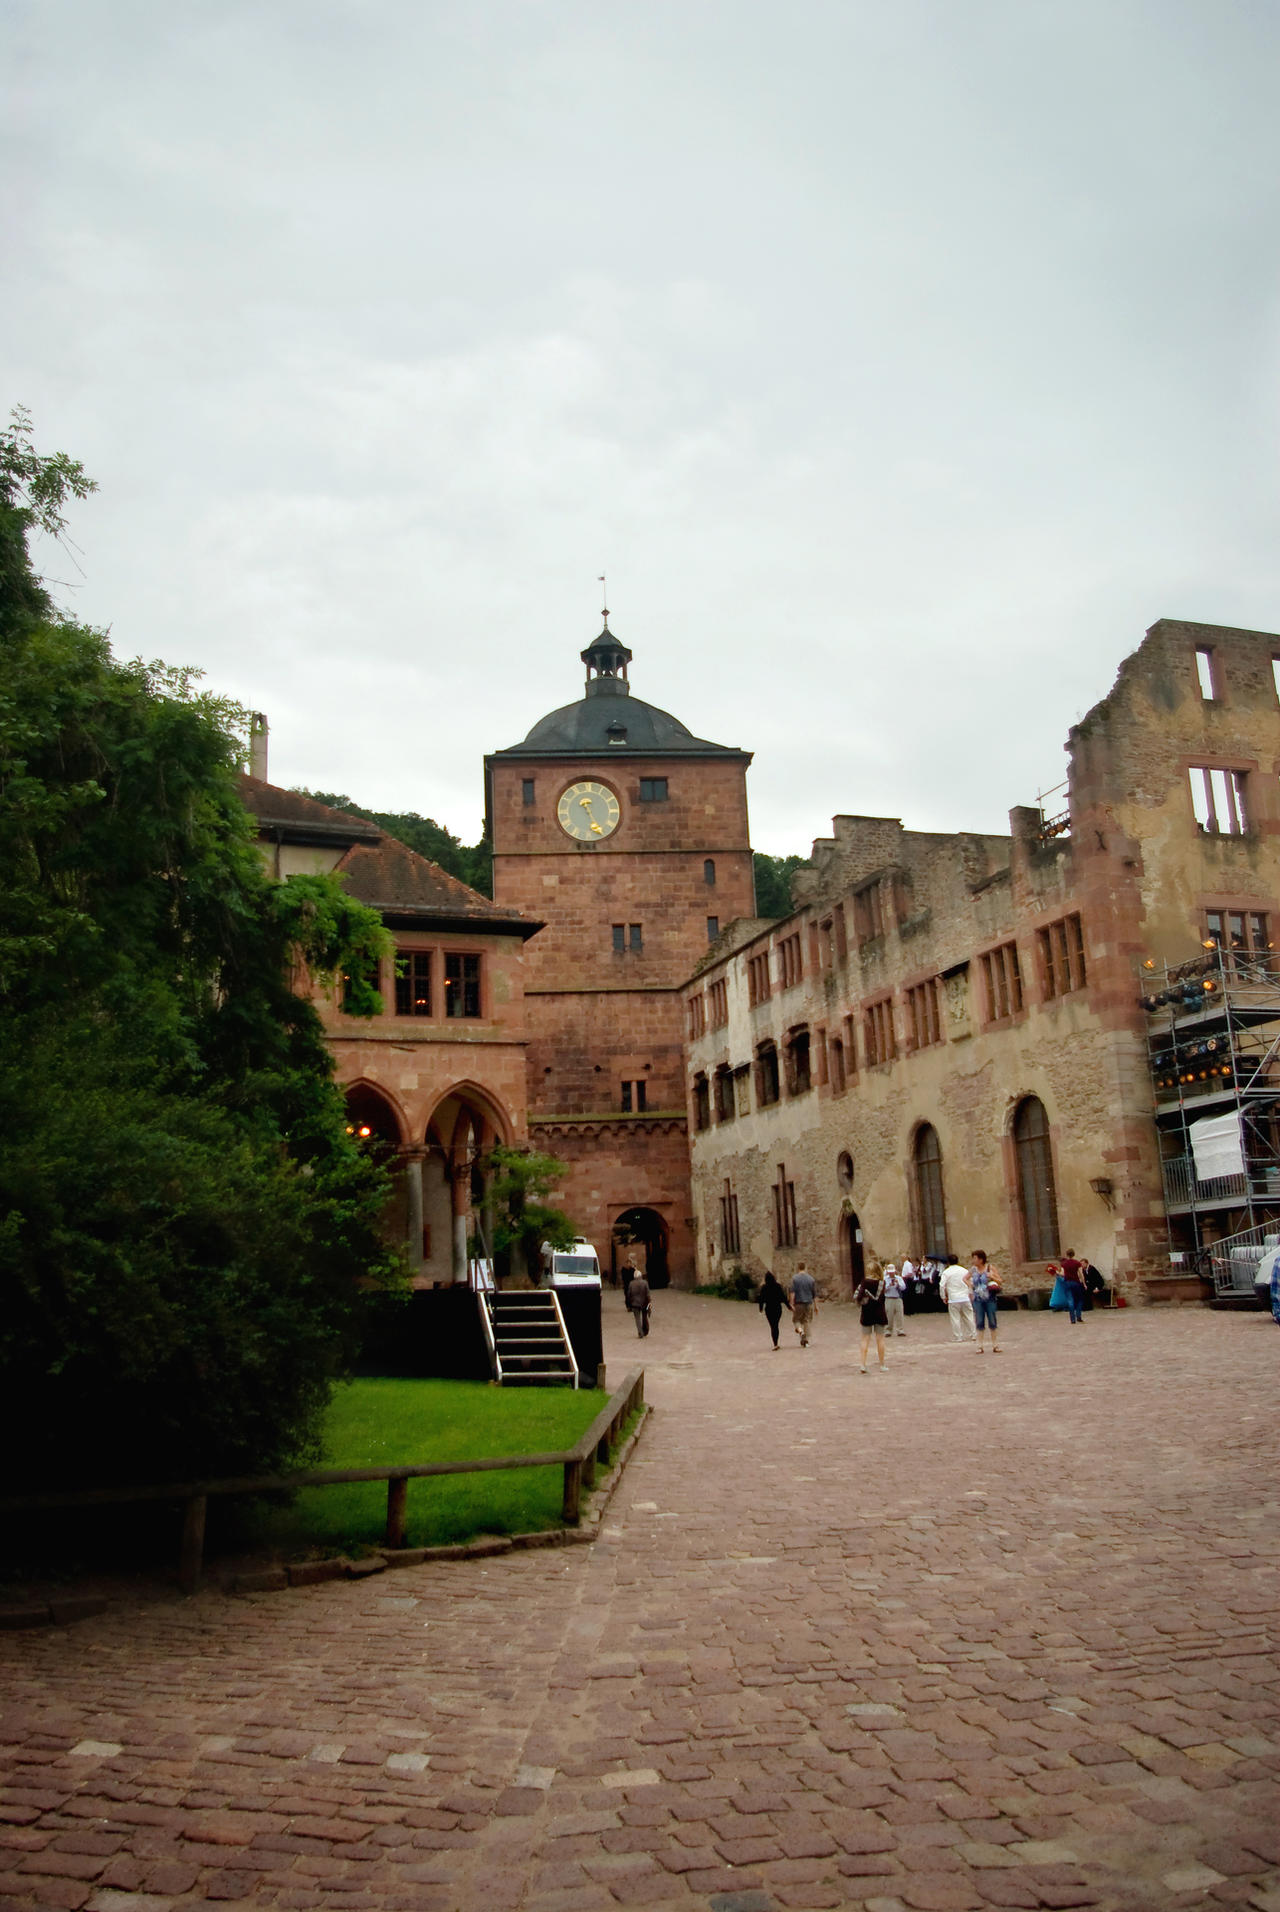 Heidelberg Castle - Courtyard and clock tower by steppelandstock